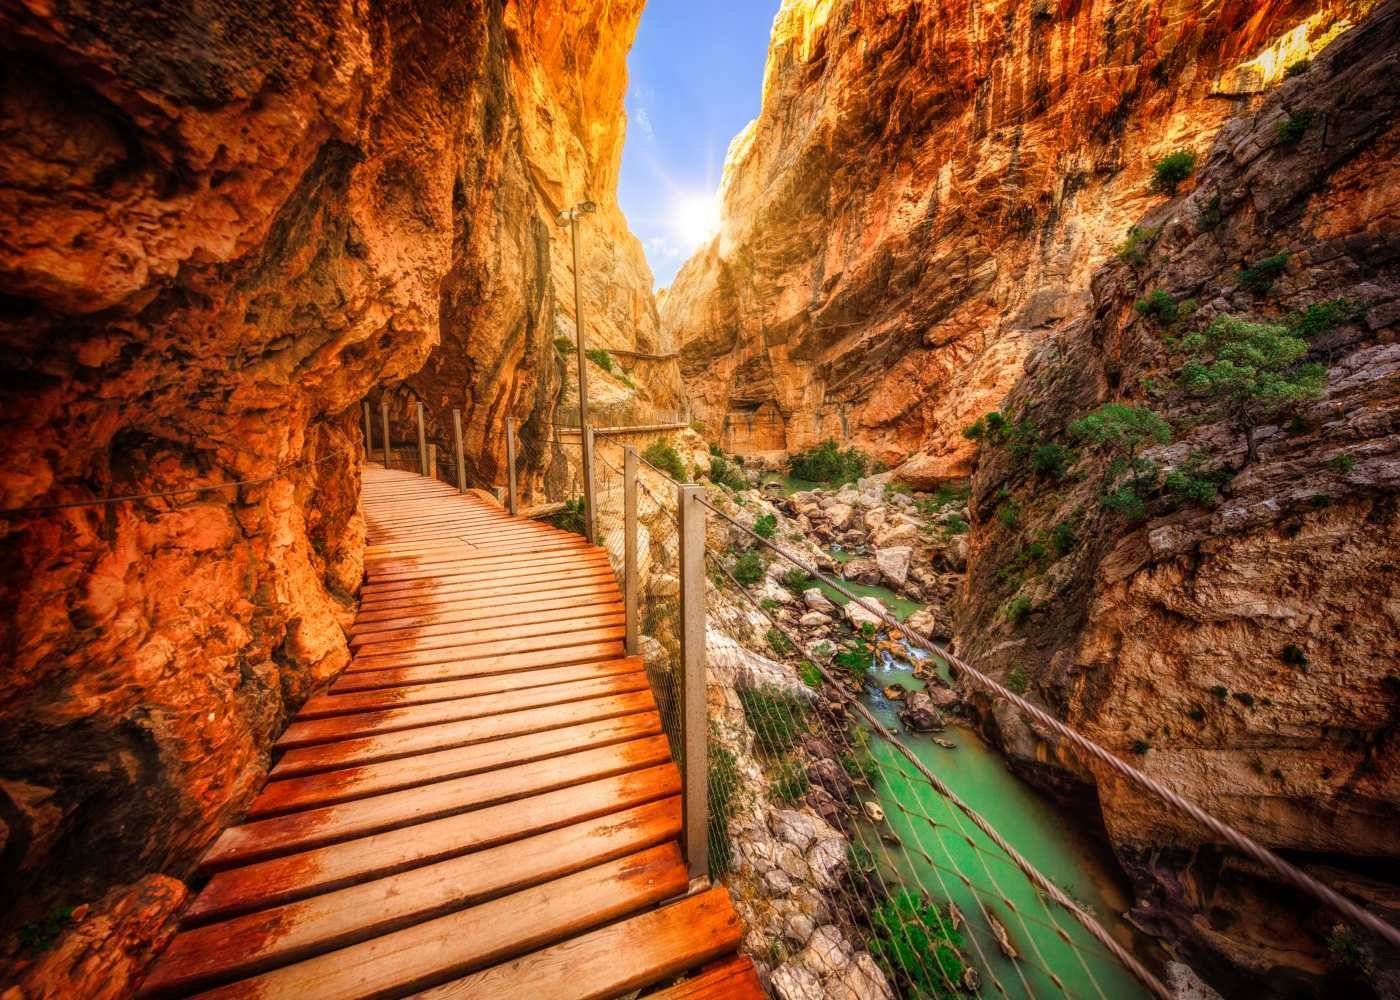 Percurso do caminito del Rey